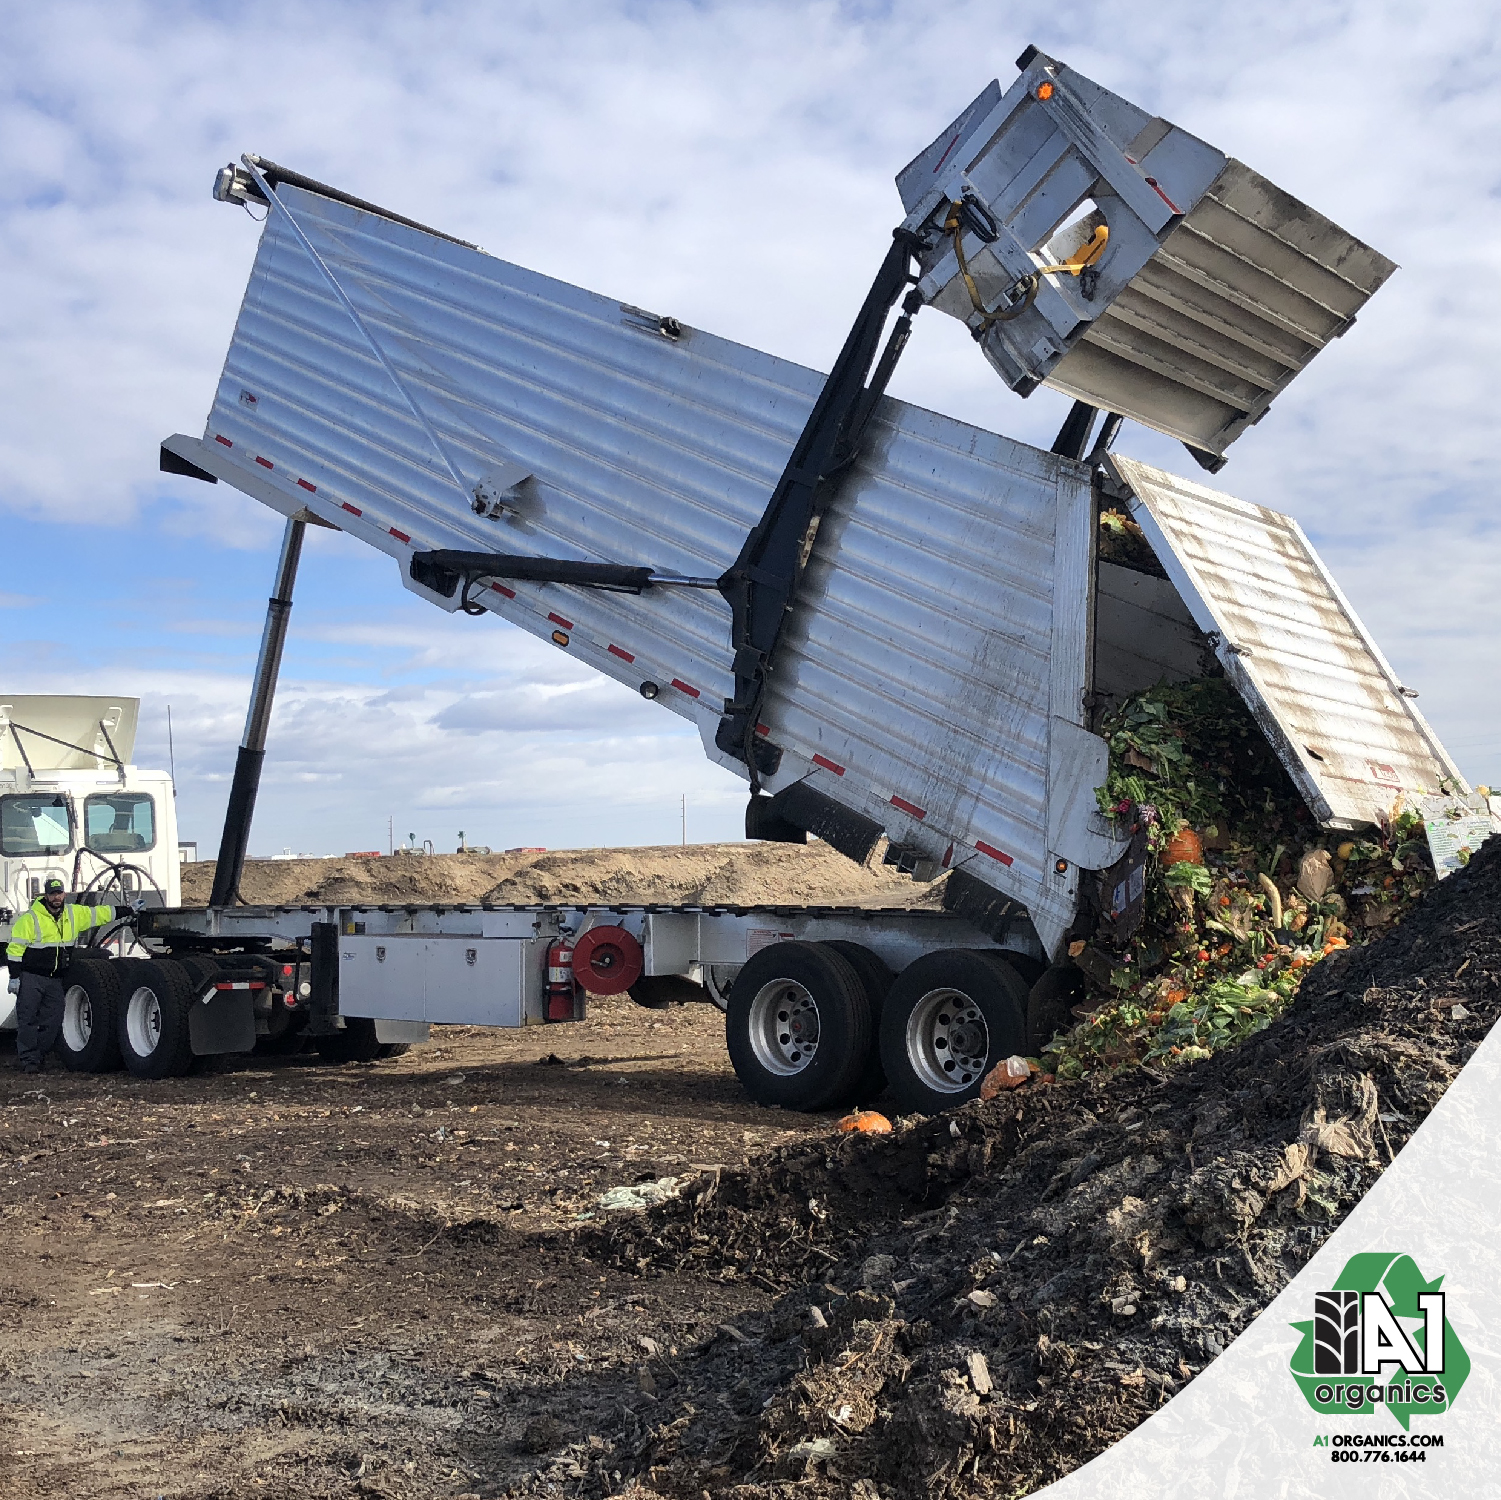 A fresh load of compostable materials is added to the windrows at A1 Organics' facility northeast of Denver.